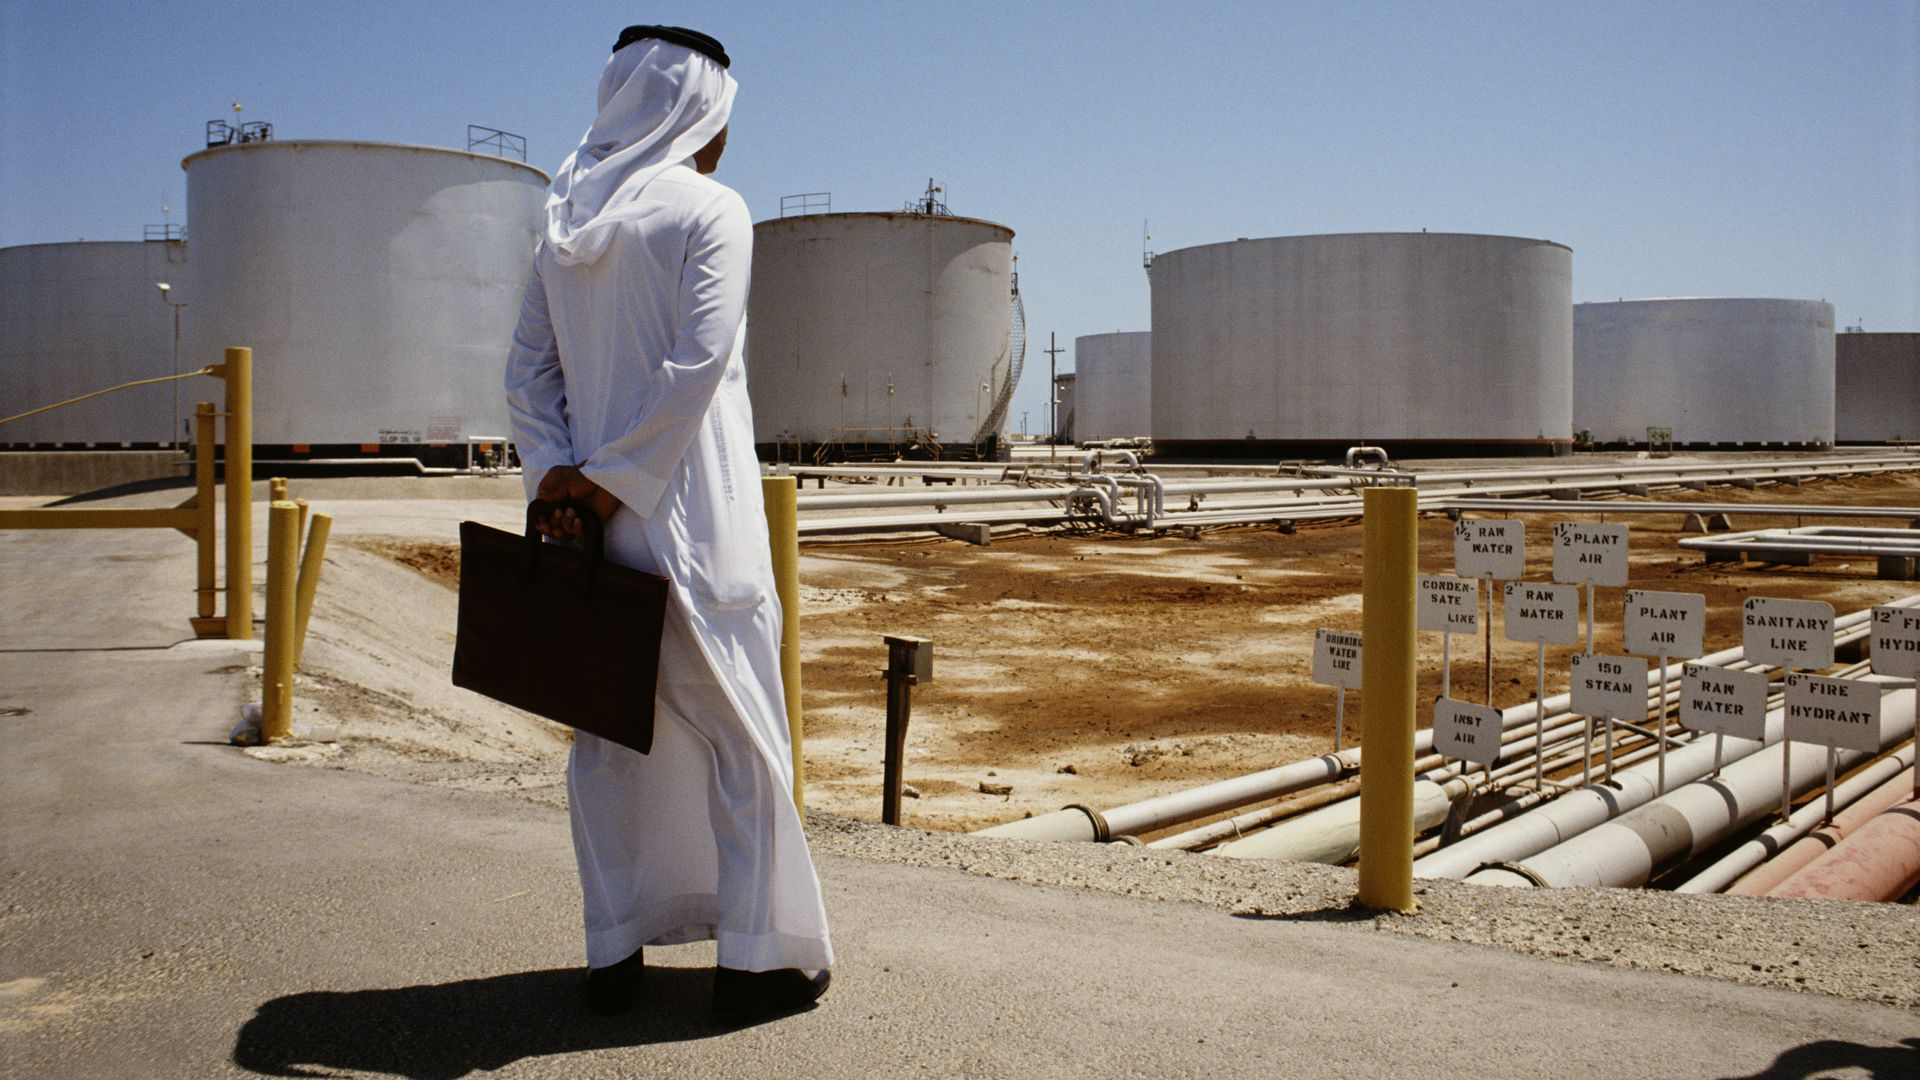 Oil giant Saudi Aramco sets initial IPO valuation at $1.7 trillion